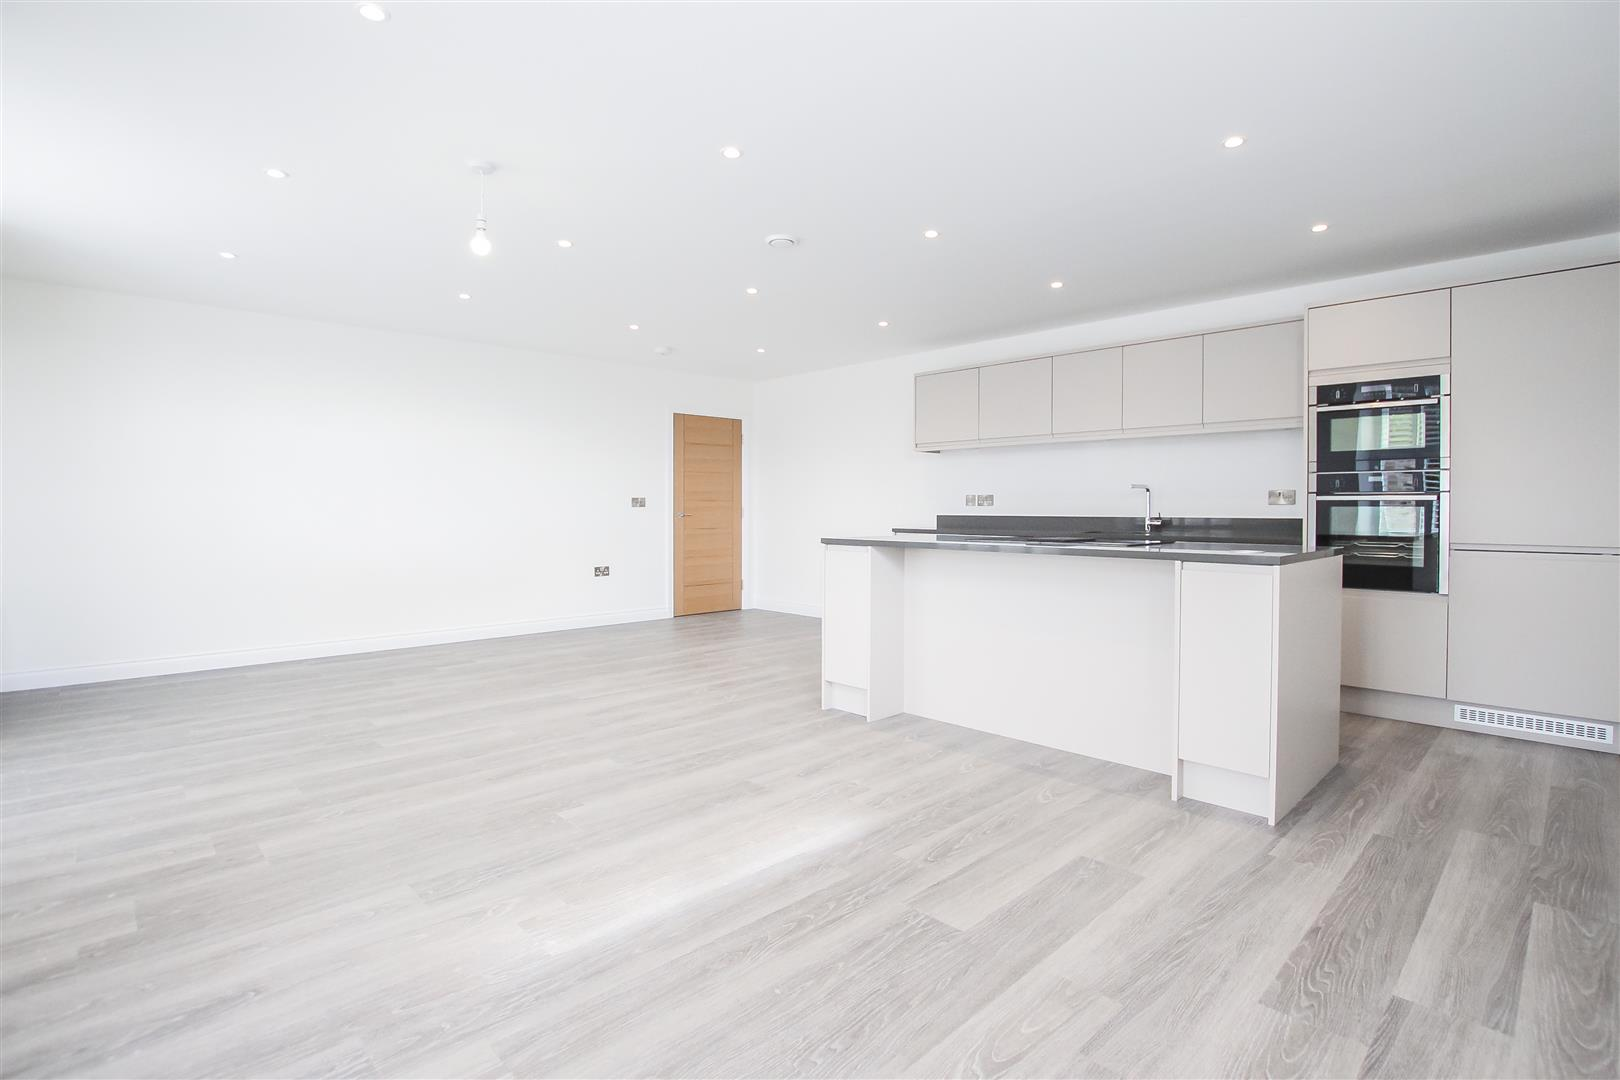 2 Bedroom Apartment For Sale - Image 2